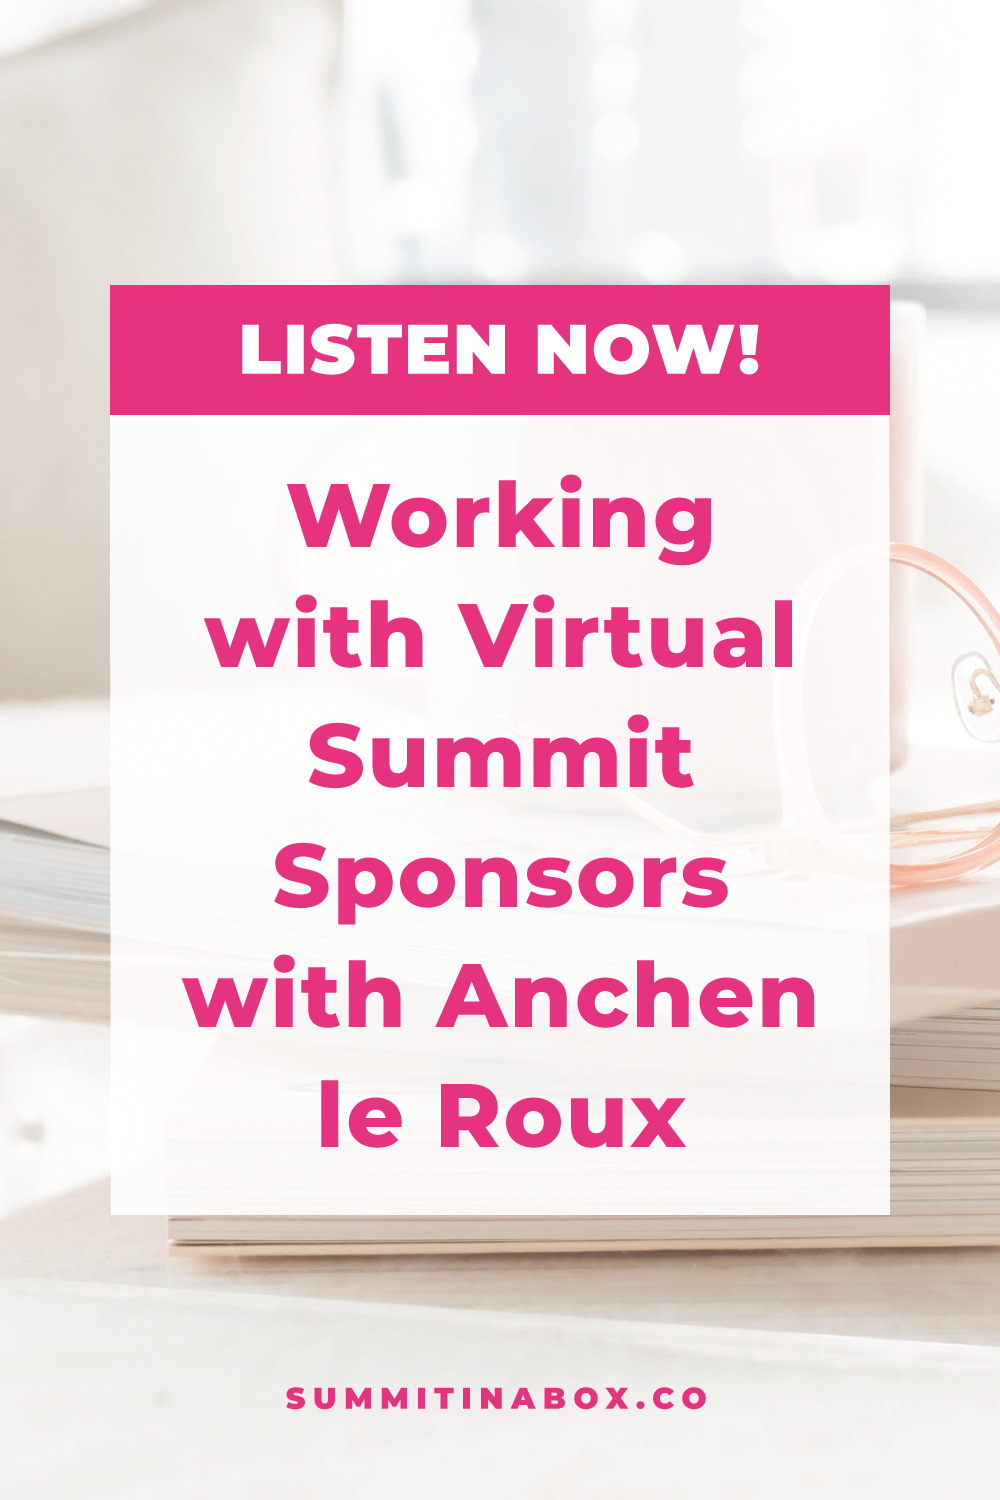 Anchen le Roux is joining us to share how she saw a 16% all-access pass conversion rate with her virtual summit and more than doubled that revenue with sponsors.